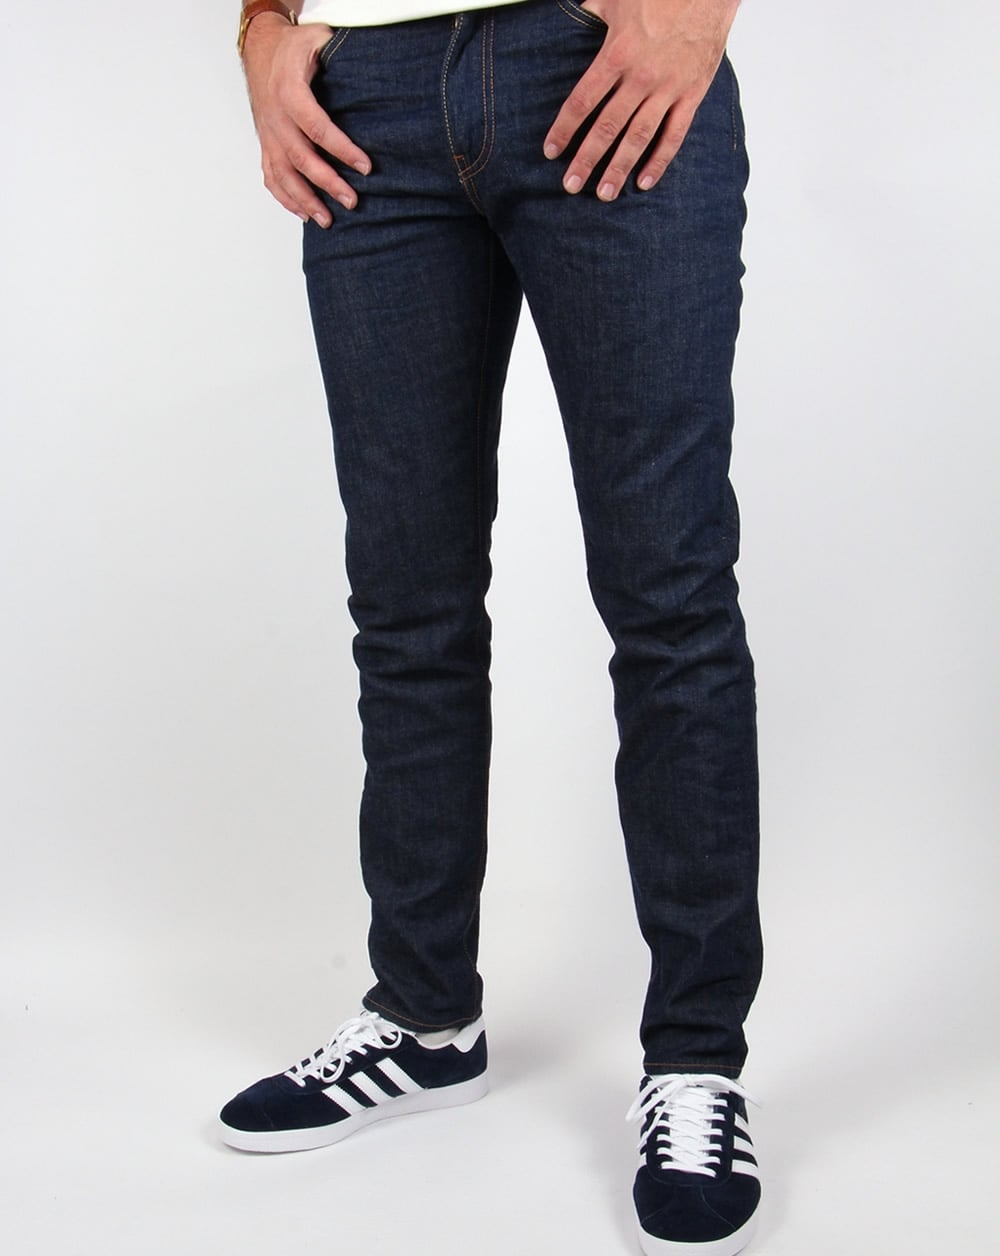 e03900081b6 Levi's Levis 512 Slim Taper Fit Jeans Broken Raw